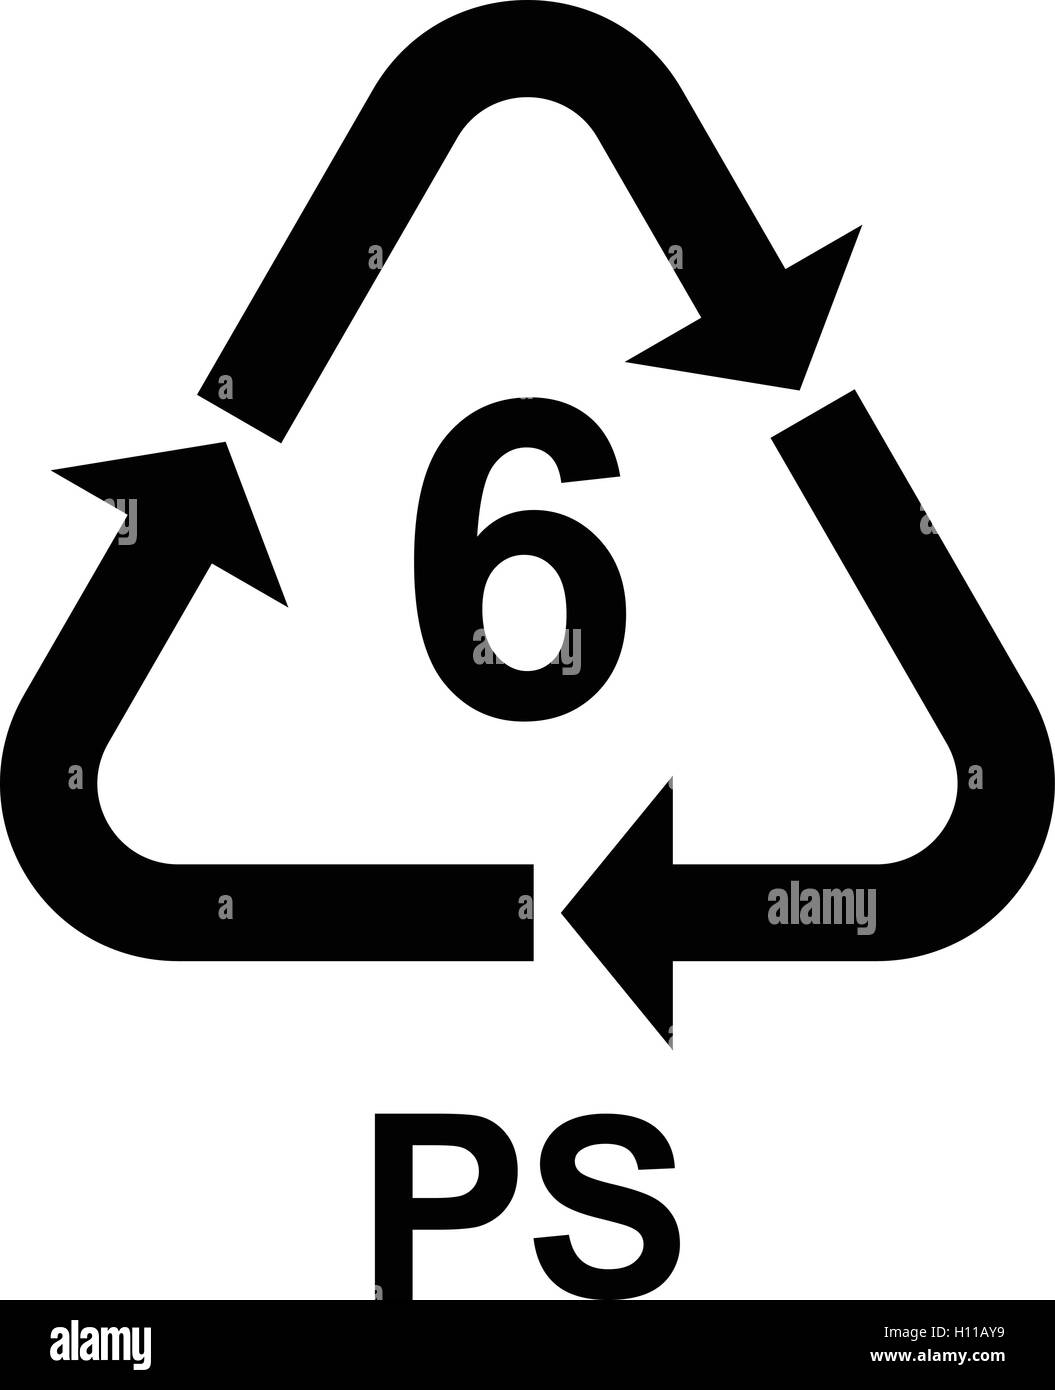 Playstation stock symbol image collections symbol and sign ideas playstation stock symbol gallery symbol and sign ideas plastic recycling symbol ps 6 plastic recycling code buycottarizona